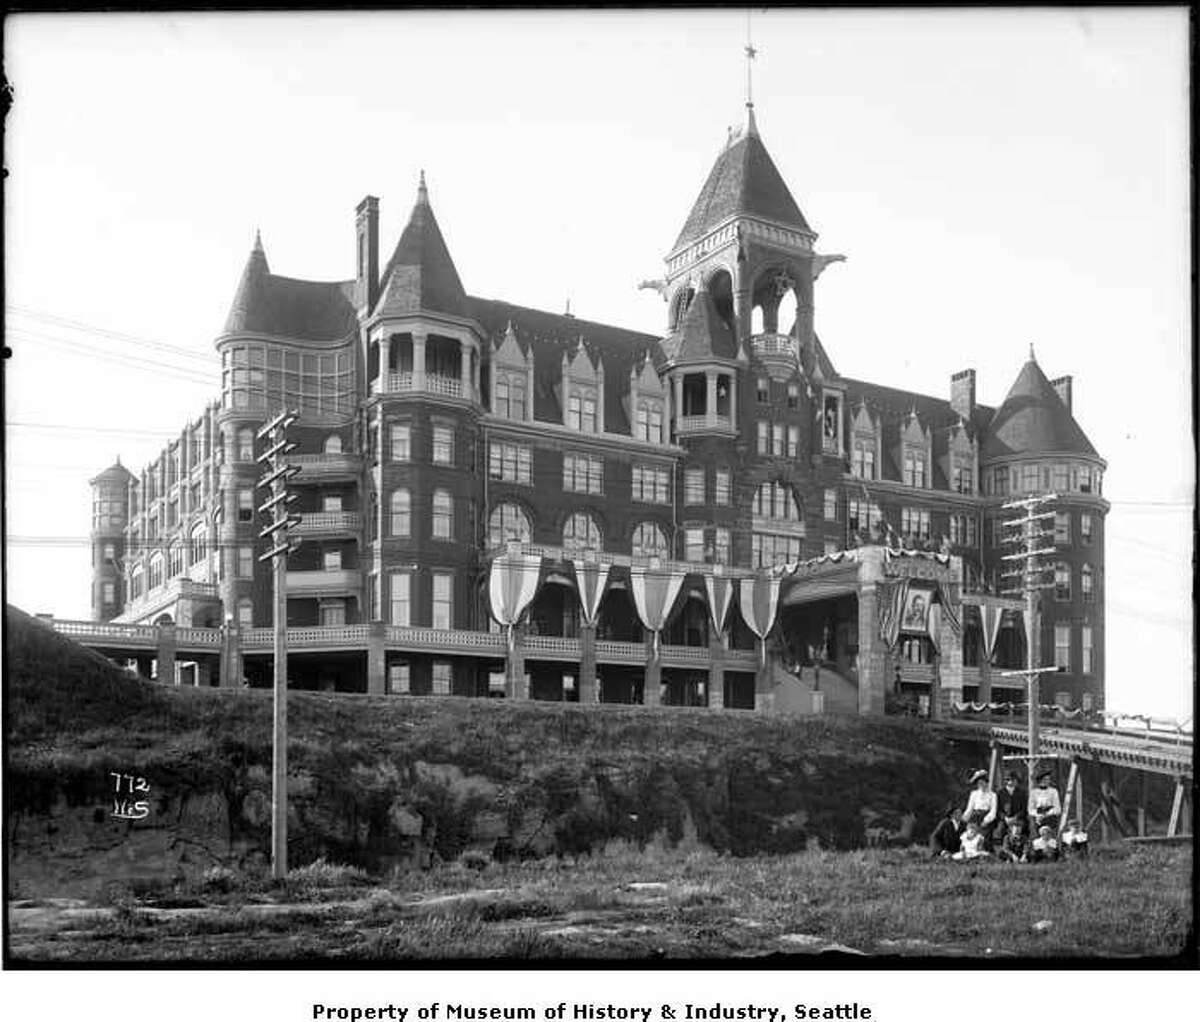 The Denny Hotel: Or Hotel Washington, depending on when in its short life you were naming it. The Denny Hotel began development by Arthur Denny and several other investors in 1889, but only a shell went up initially. The panic of 1893 stalled construction for nearly a decade, until James Moore bought the property and in short order turned it into the grand